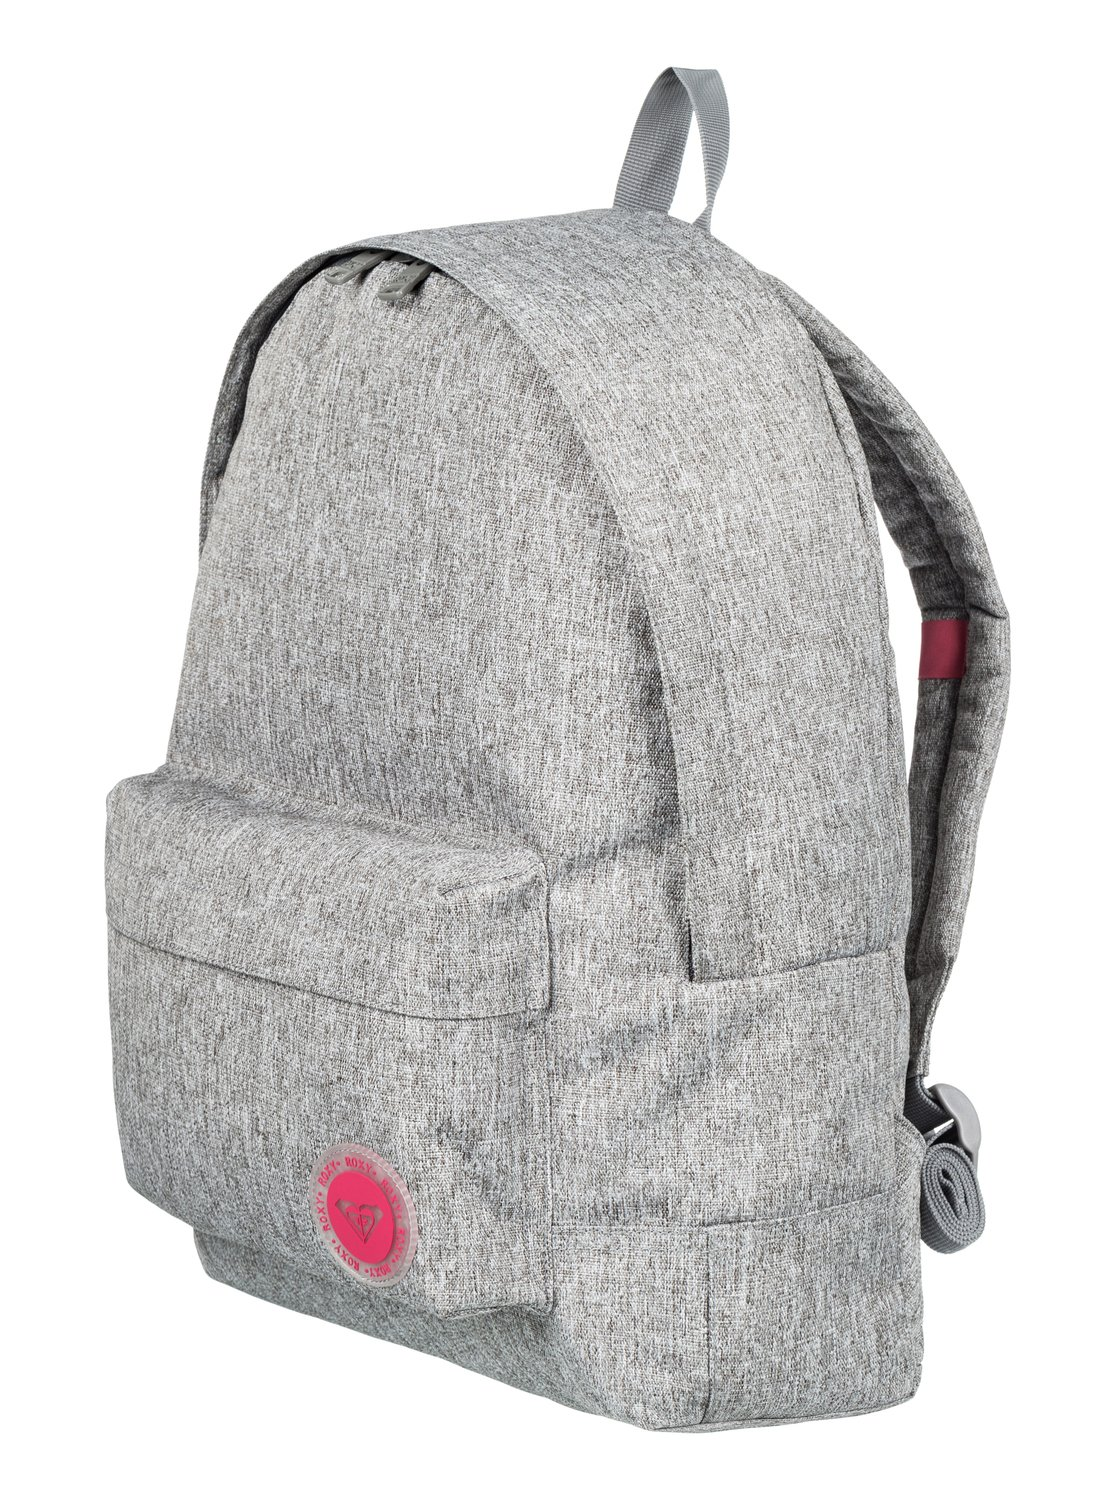 b85bc0963d6 1 Sugar Baby Heather - Small Backpack ERJBP03639 Roxy